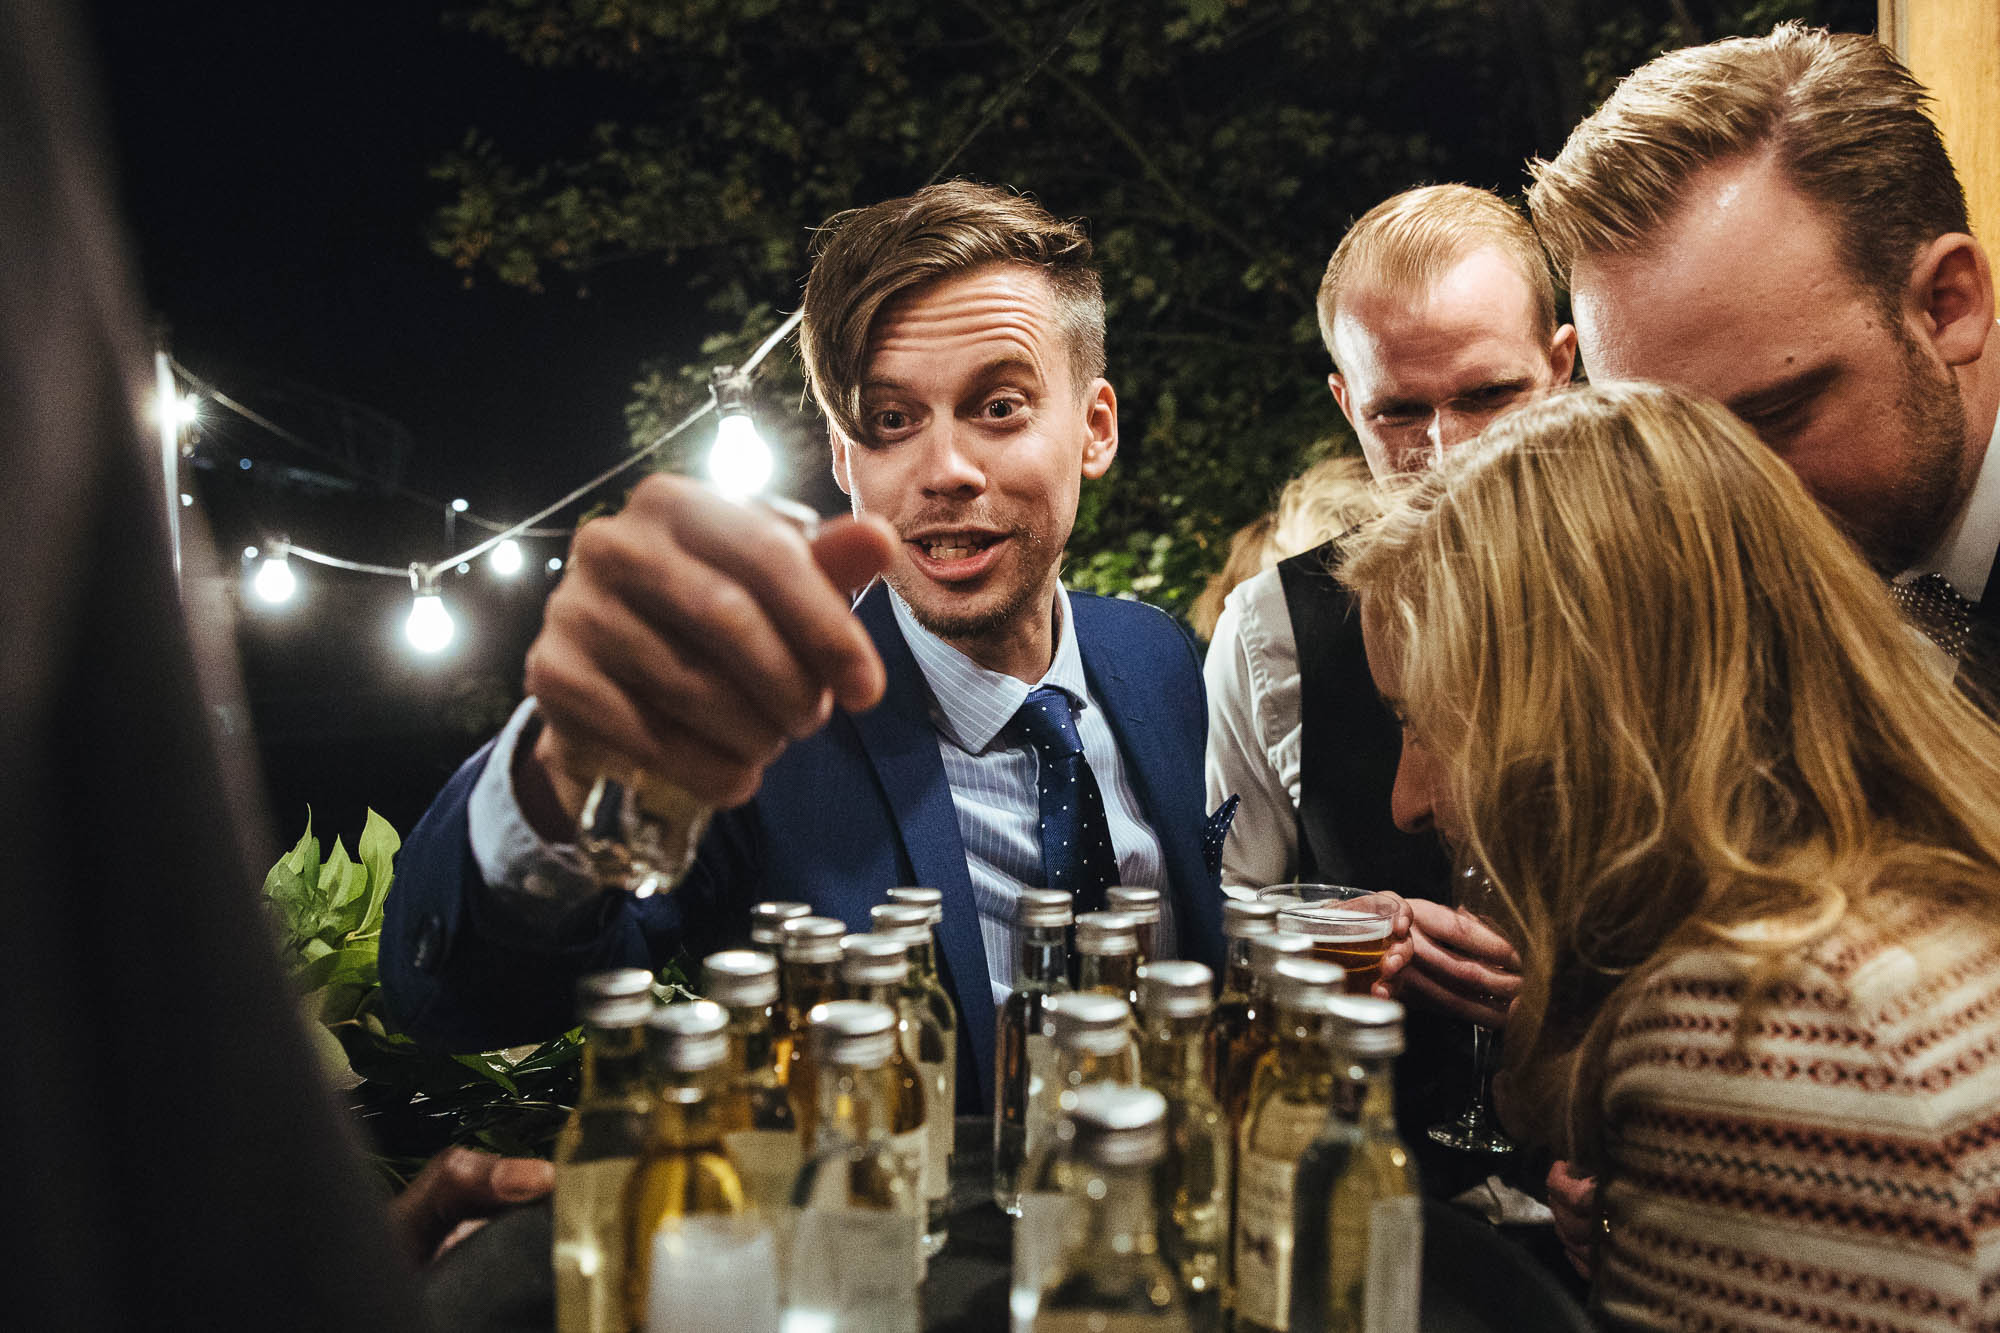 tequila shots at wedding